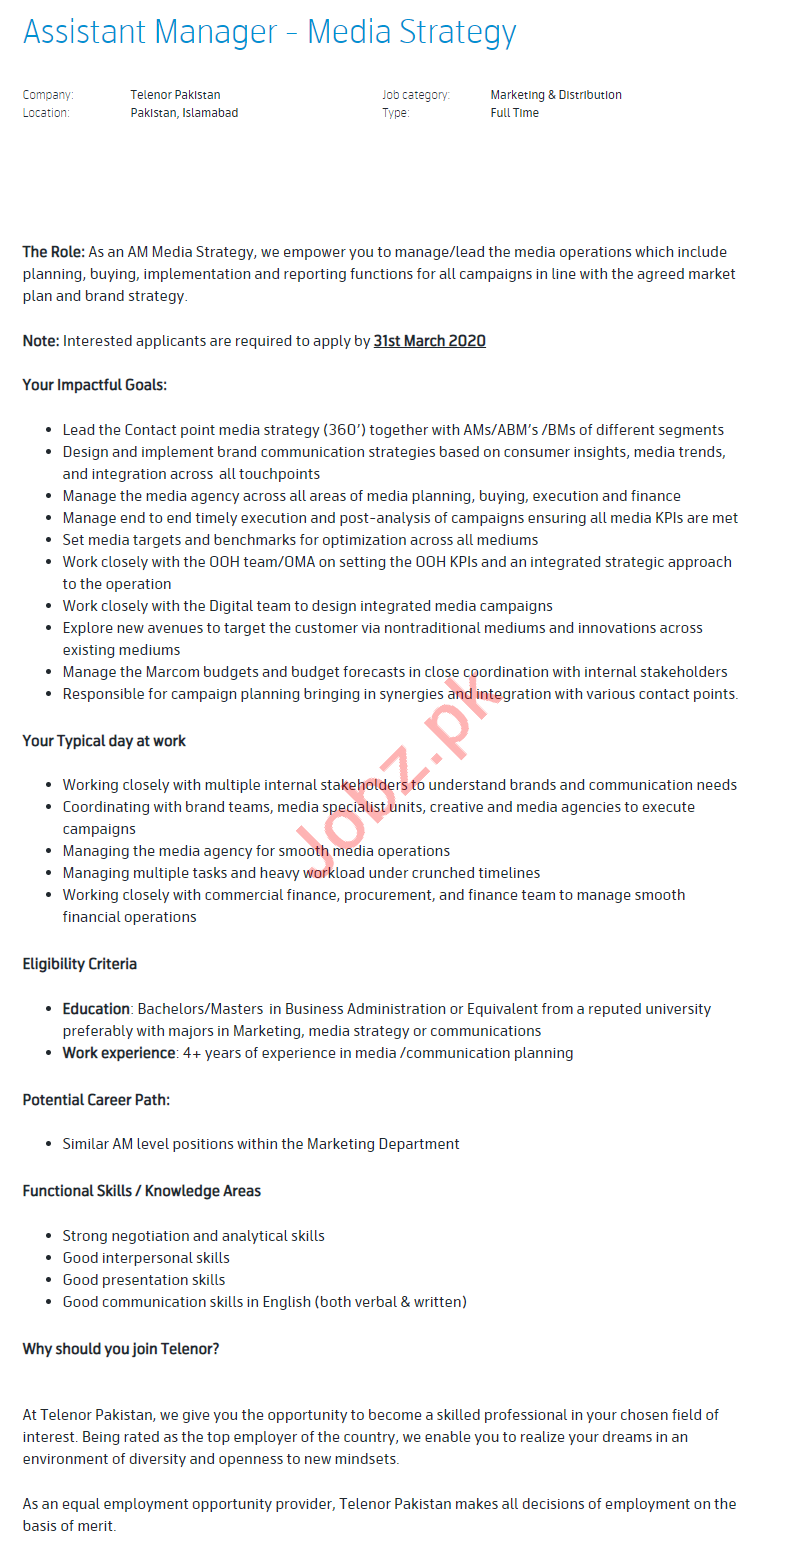 Assistant Manager Media Strategy Jobs 2020 in Islamabad